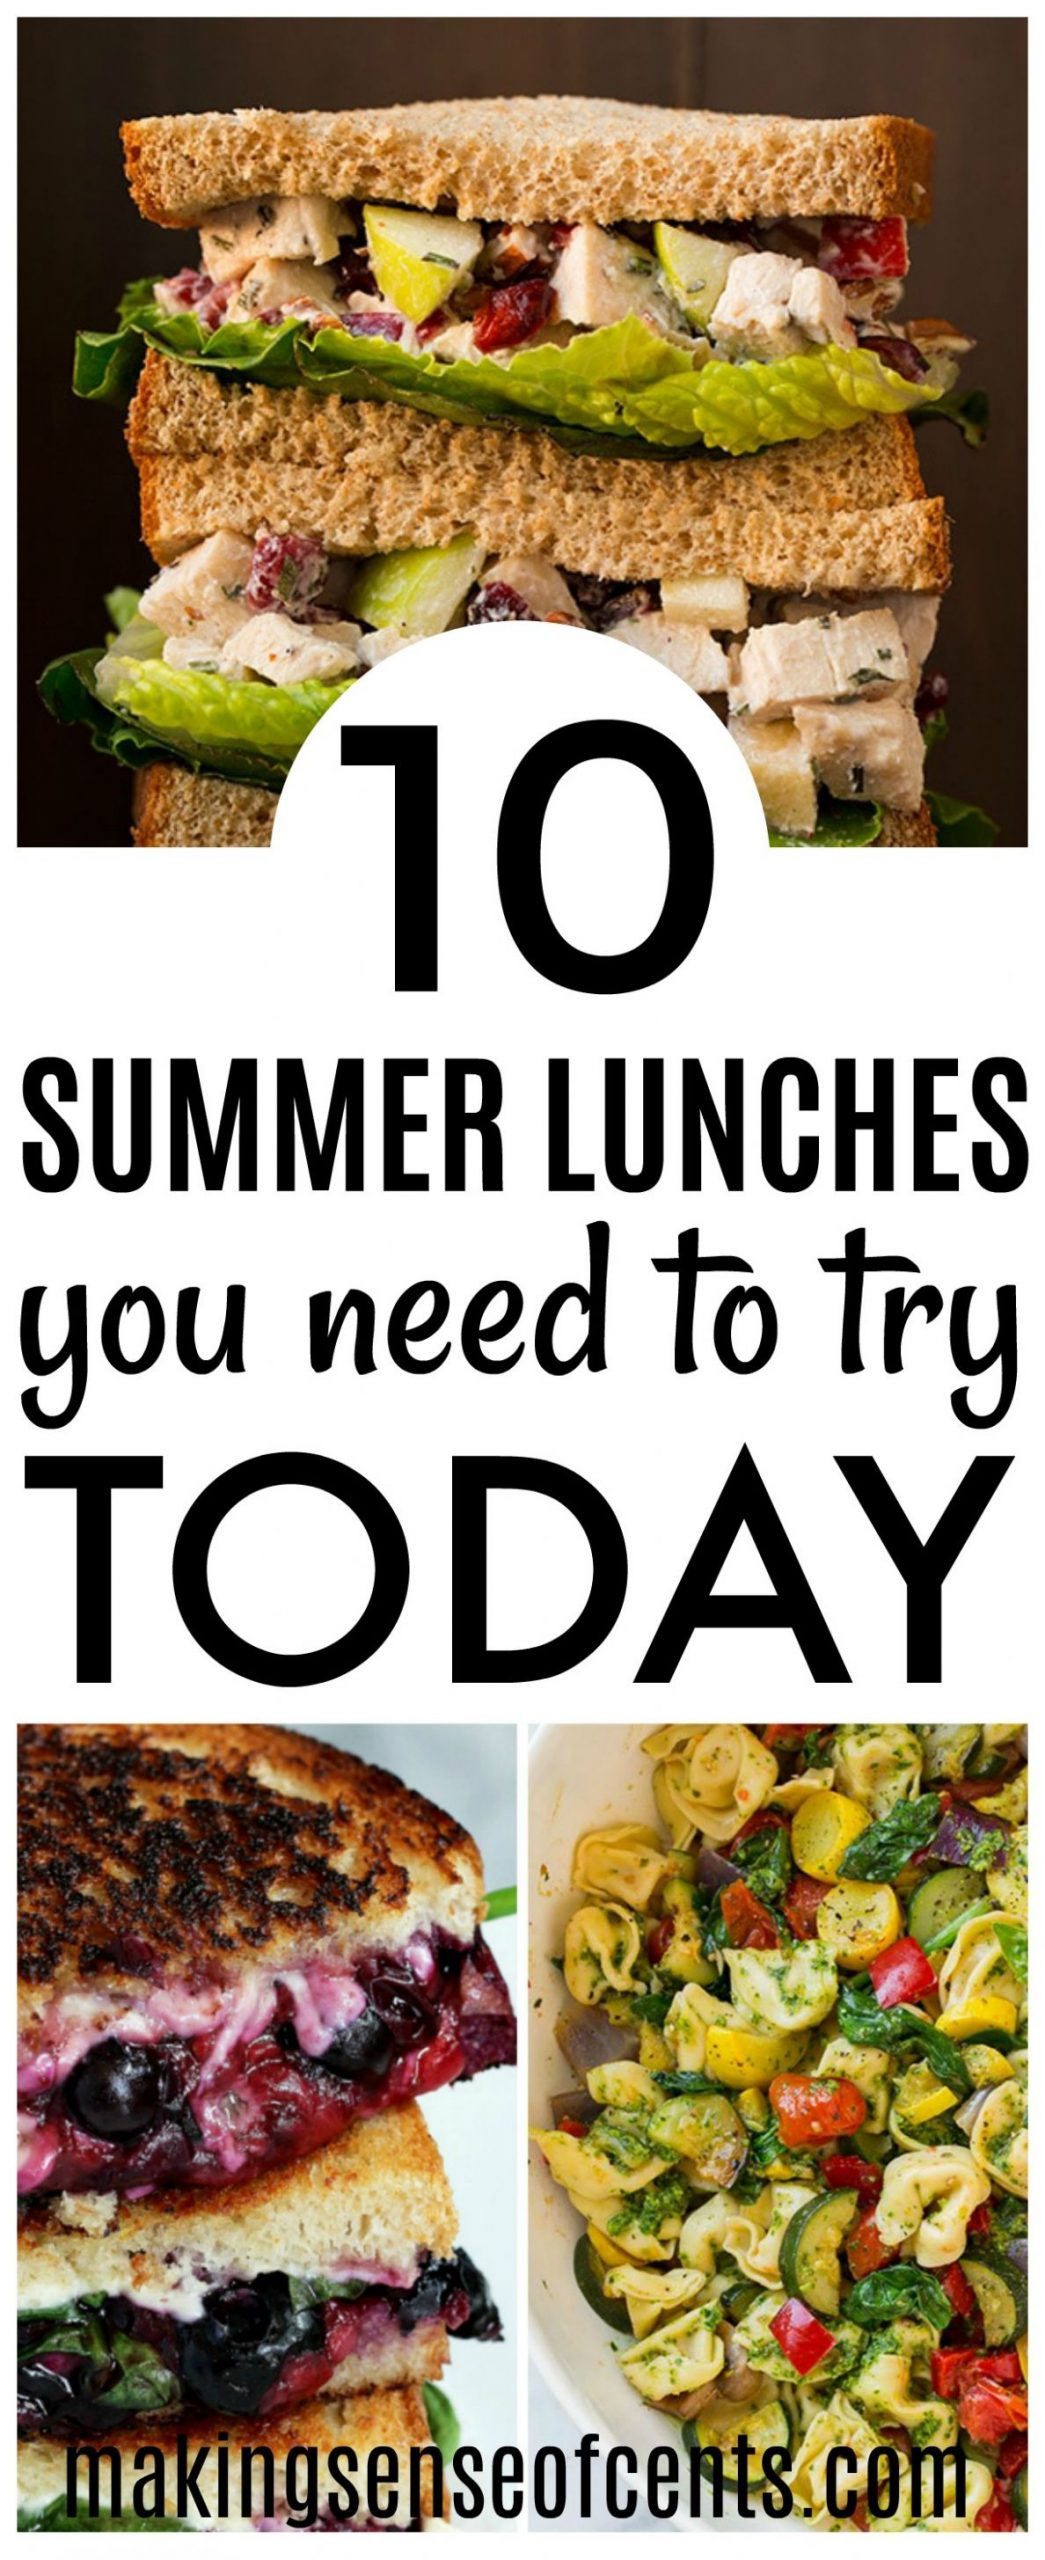 8 Delicious Summer Lunch Ideas - Summer Meals You Need To Make!